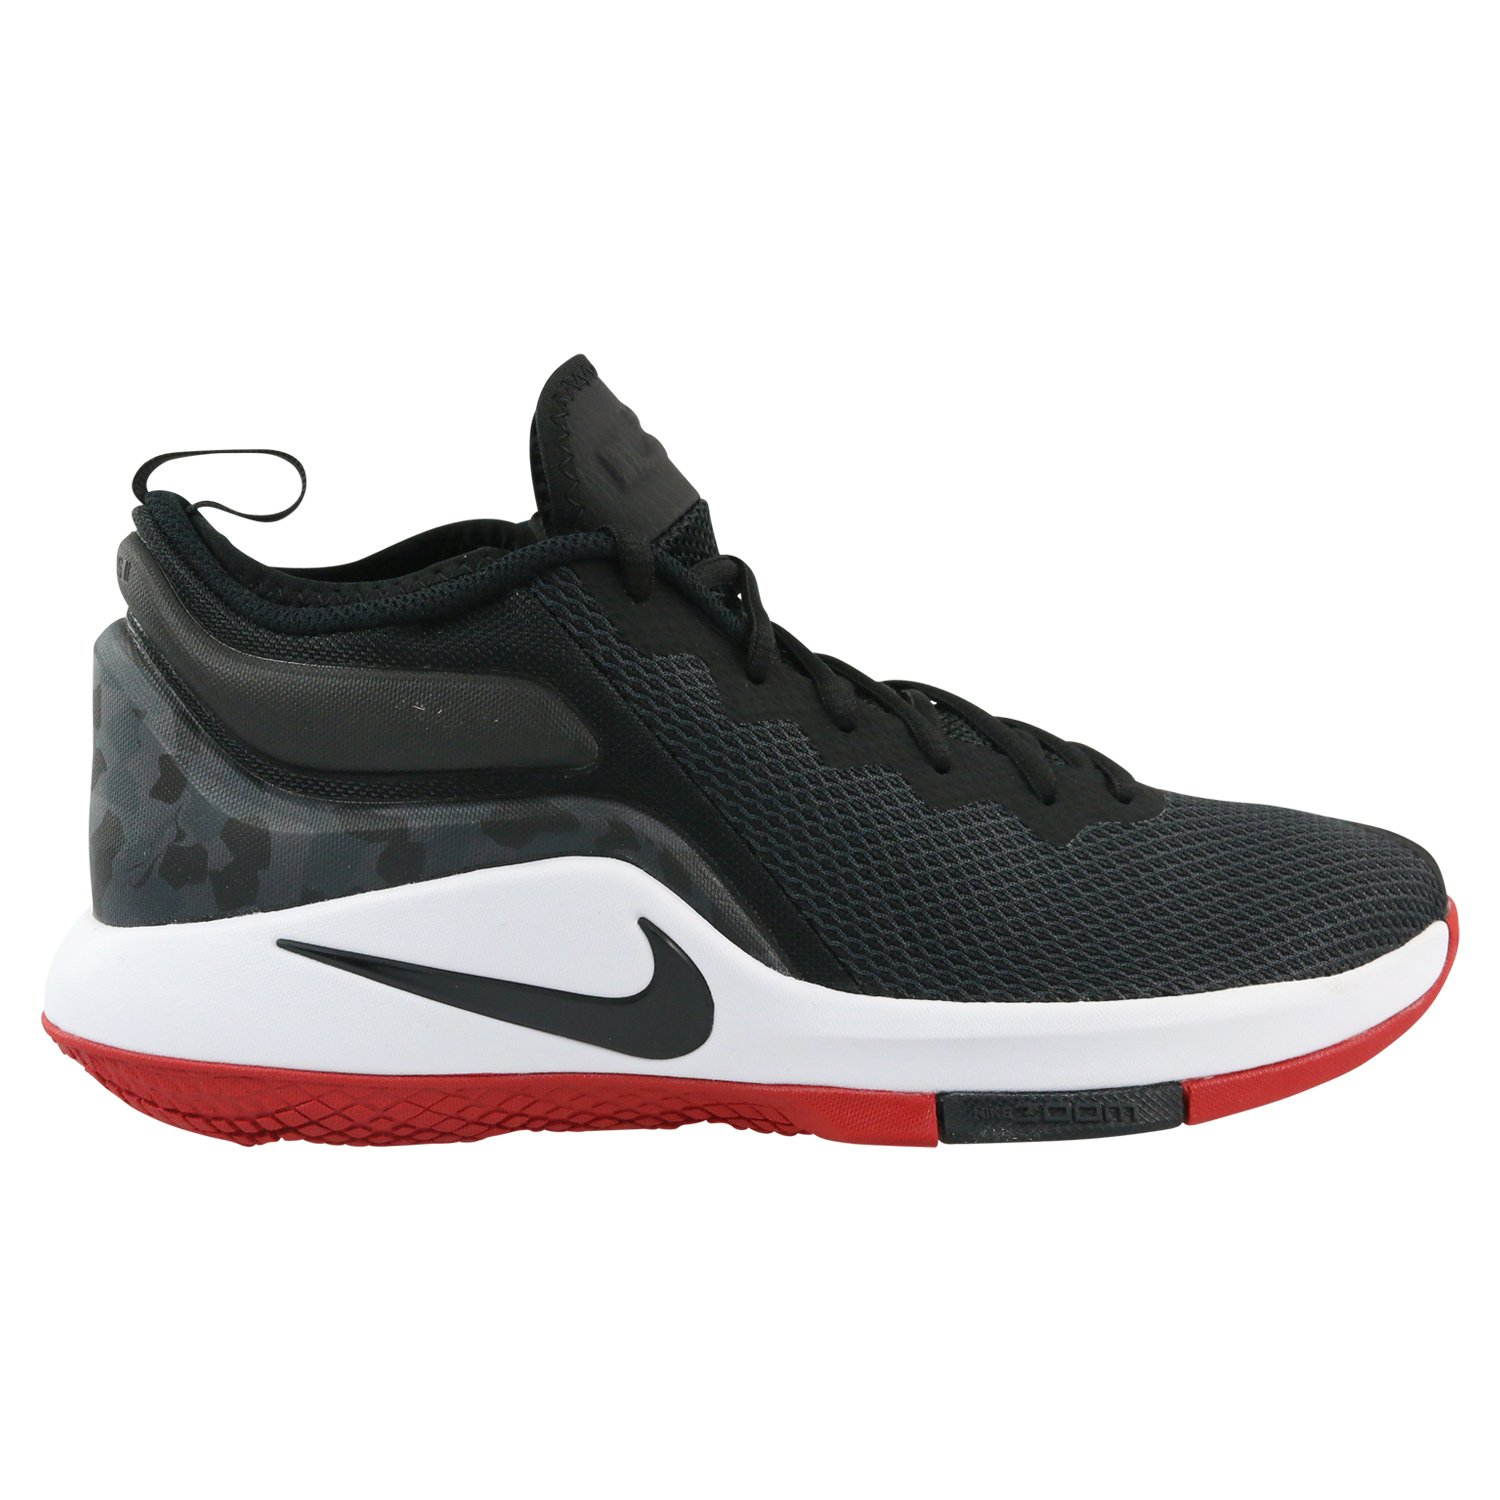 designer fashion a49cf fa880 Nike Men s Lebron Witness II Basketball Shoe Black White-Gym Red (11.5)   Buy Online at Low Prices in India - Amazon.in